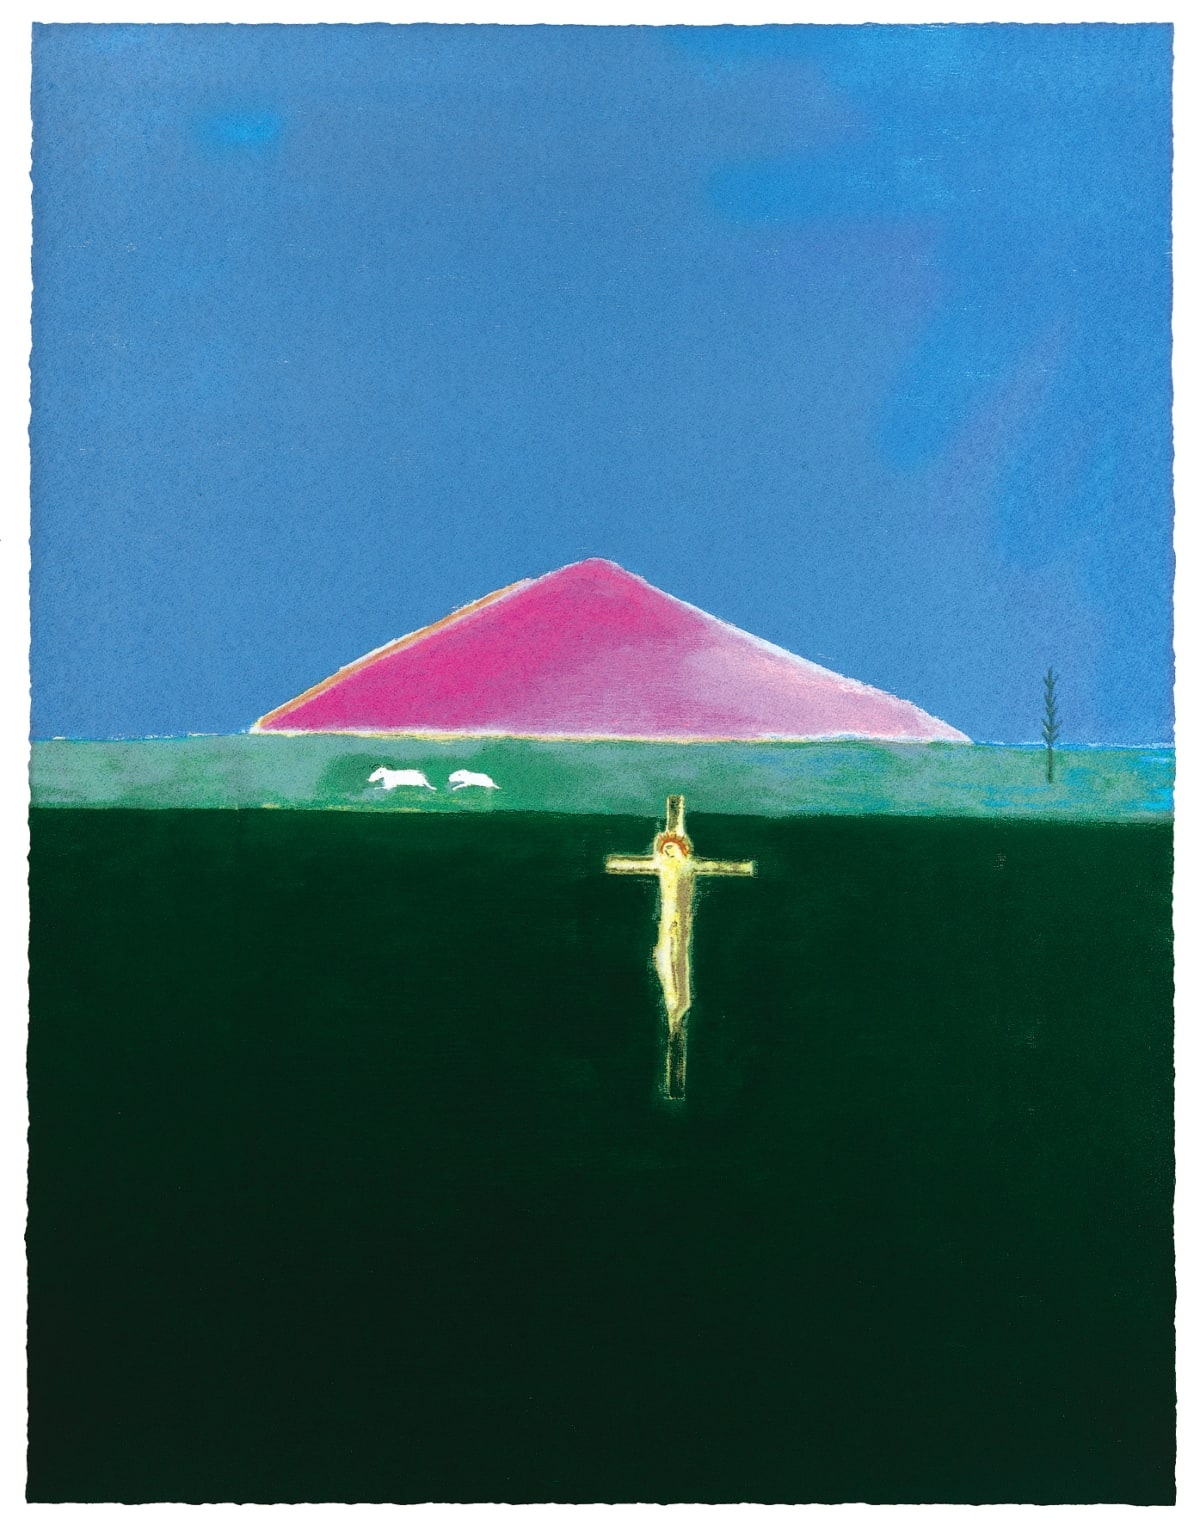 Craigie Aitchison Crucifixion and Mountain, 2005 screenprint 110.5 x 85.25cm edition of 75